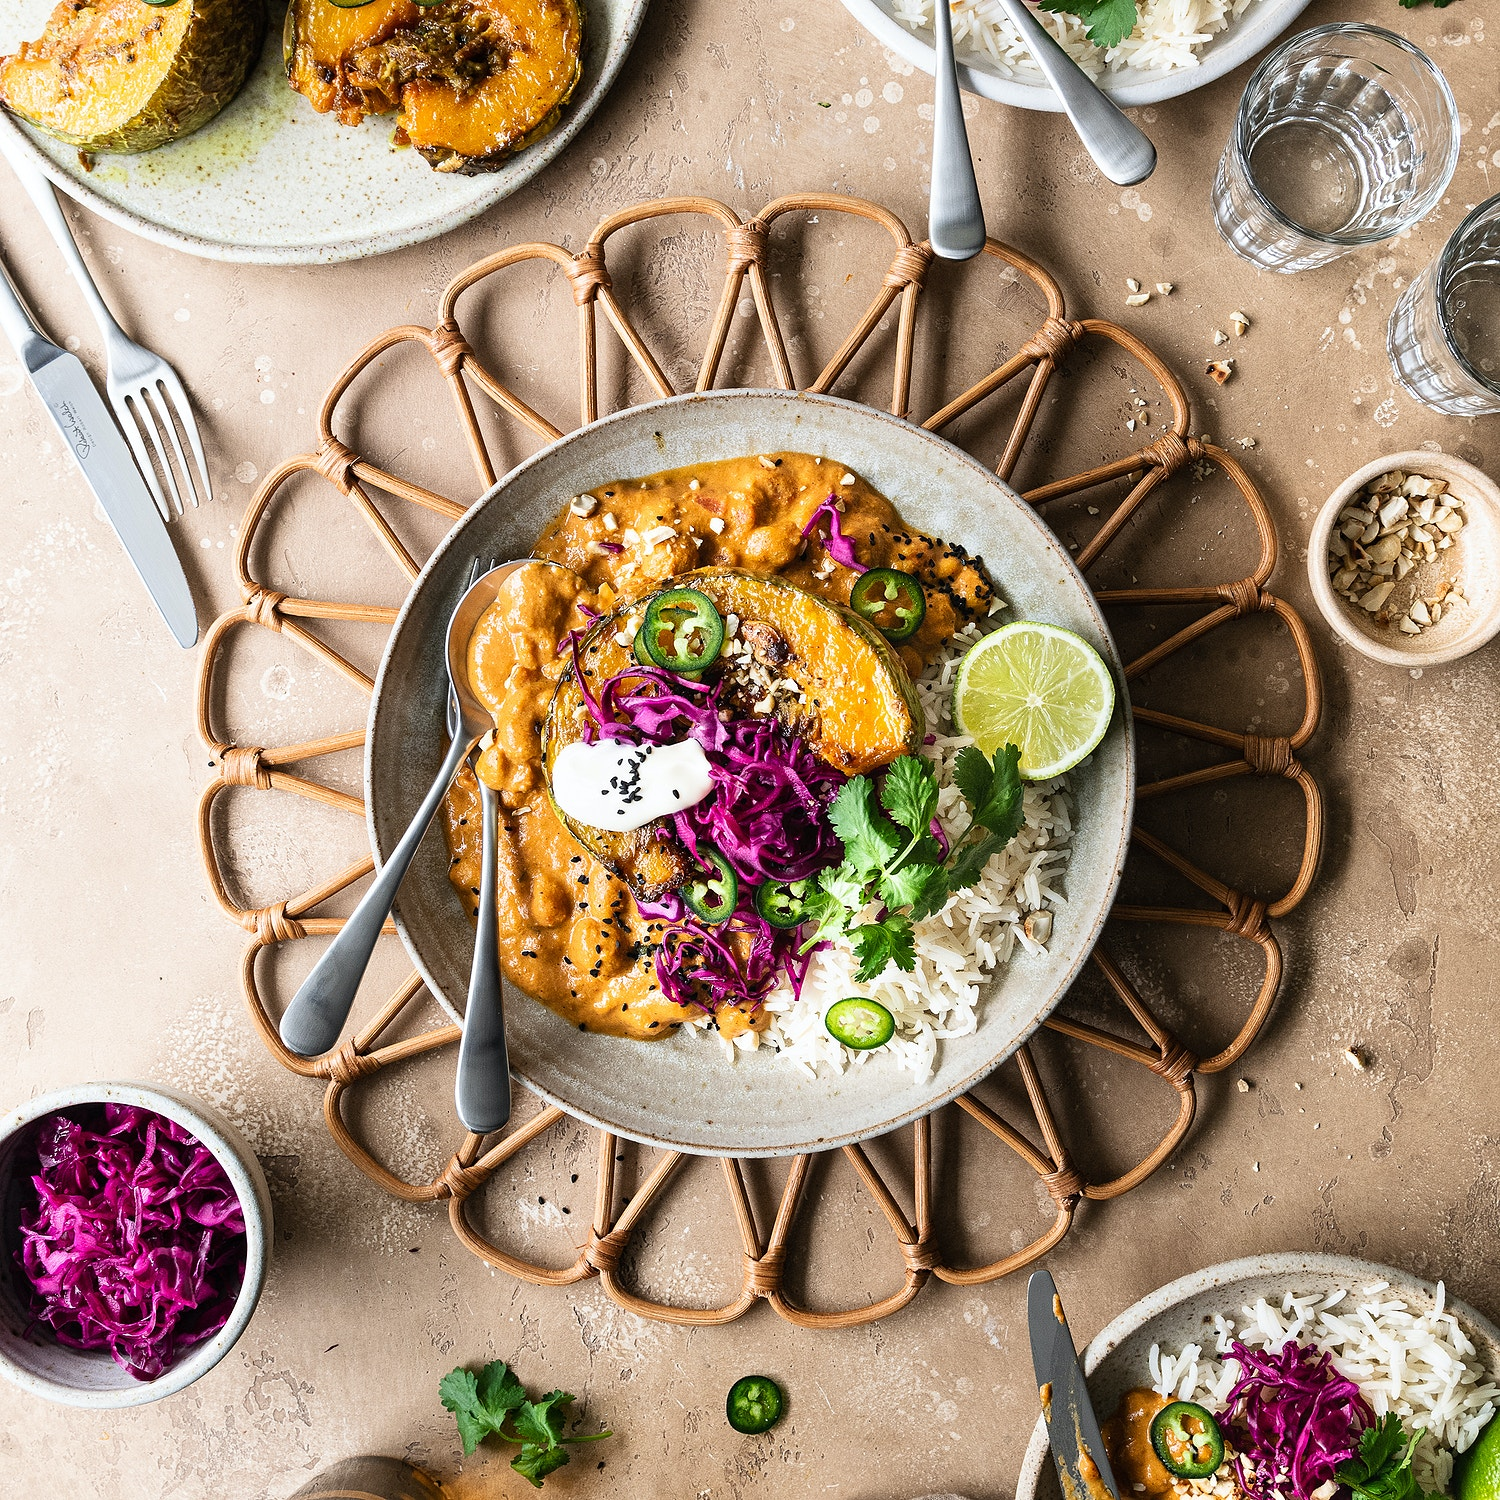 Chickpea Makhani with Spiced Roasted Squash